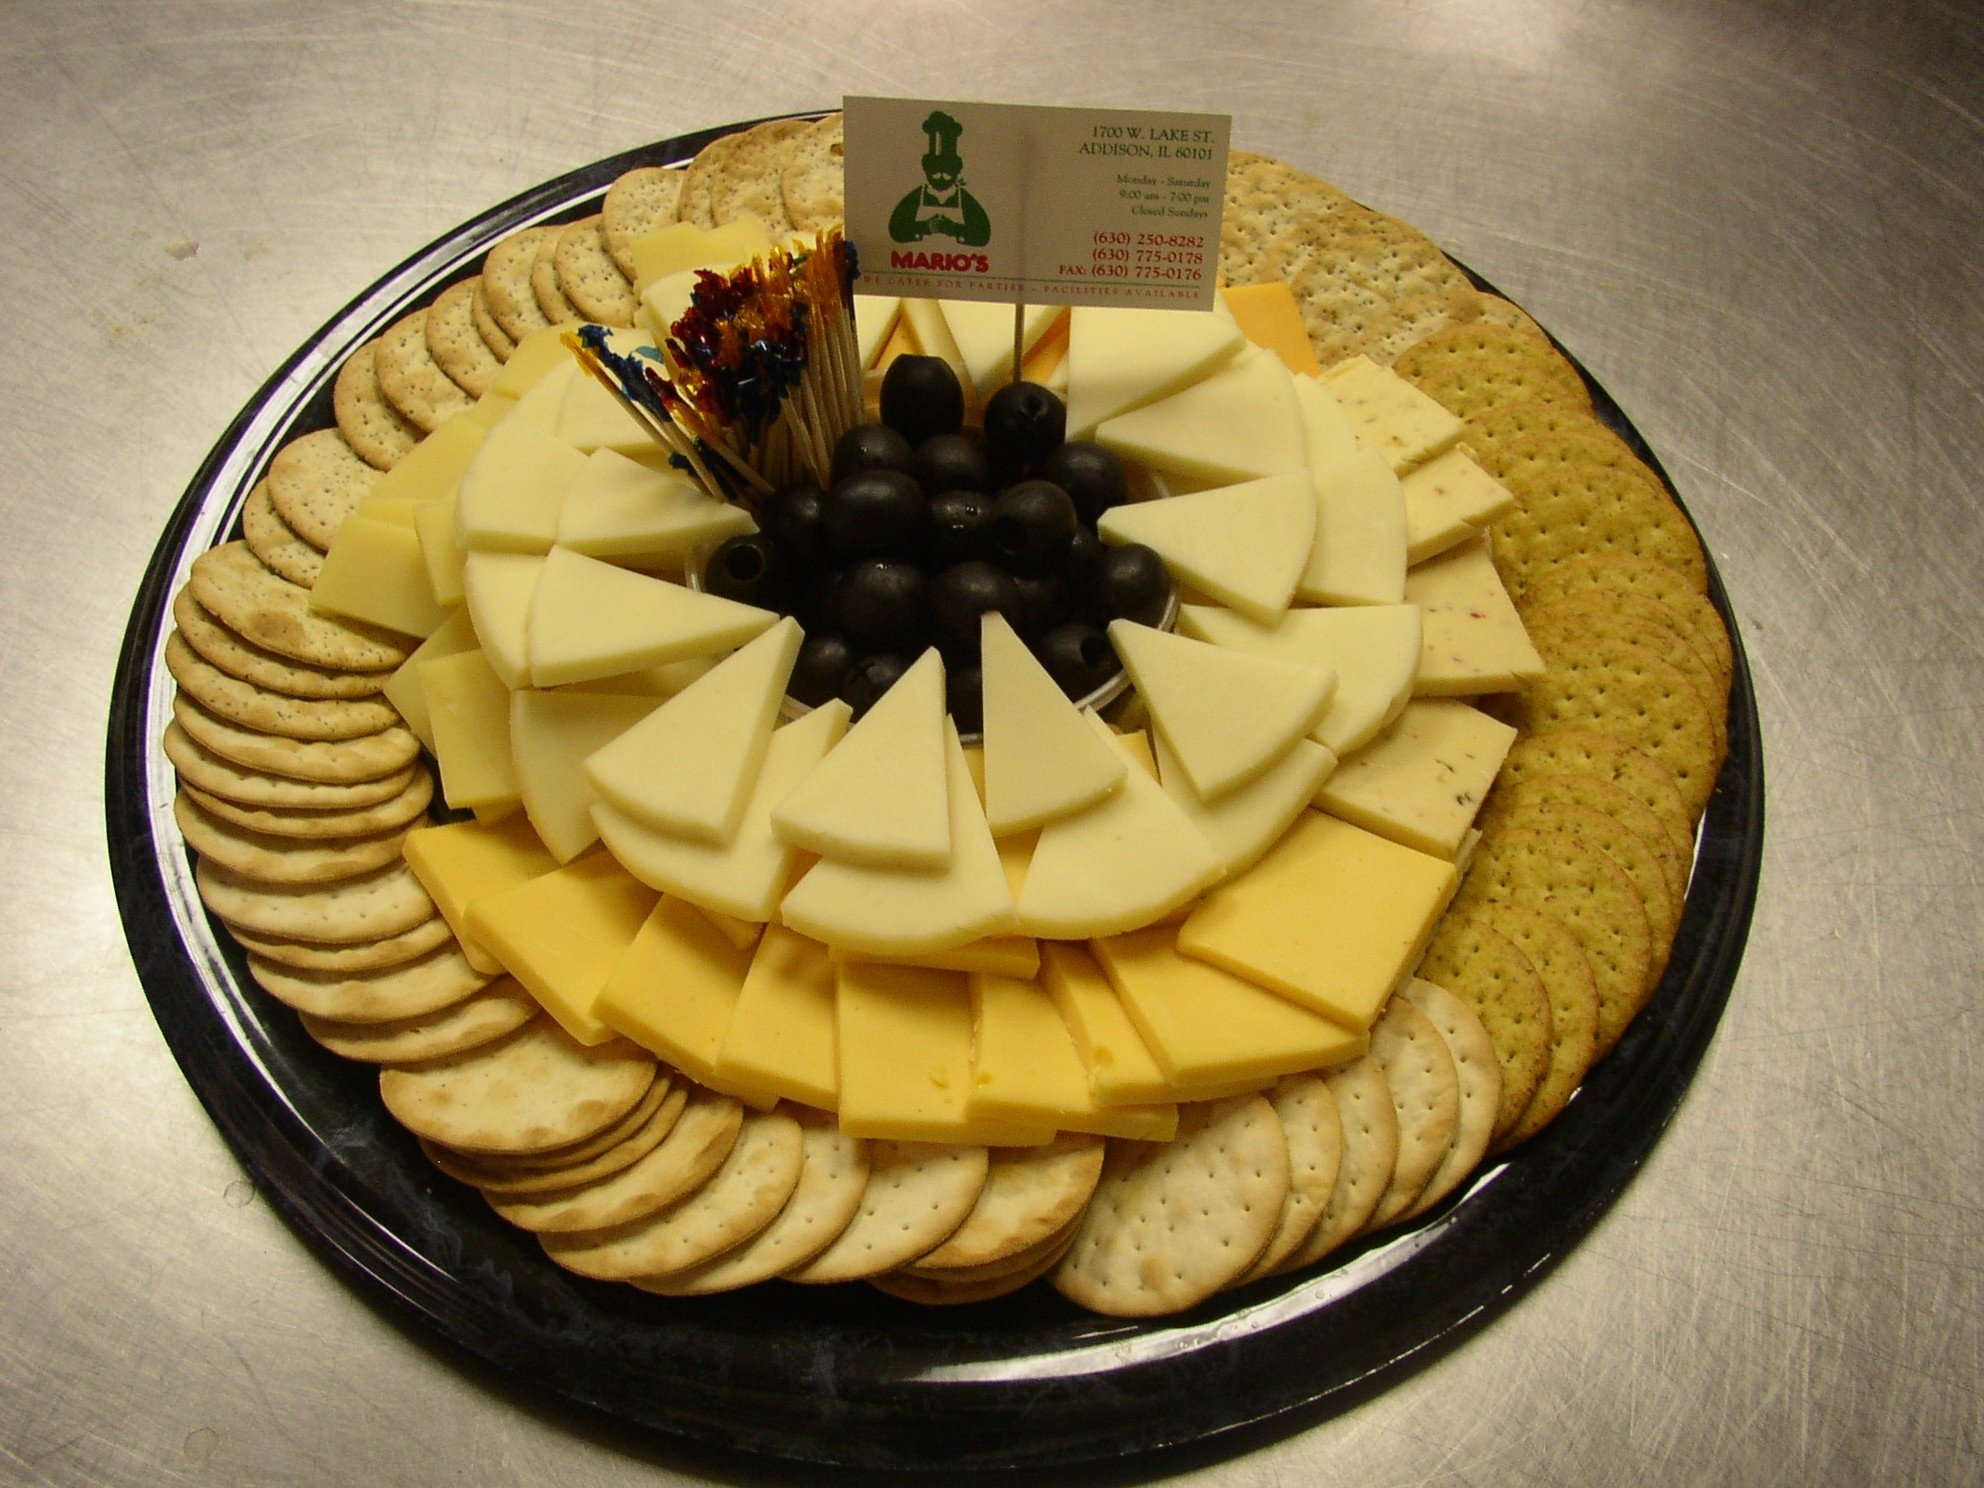 10 Fantastic Cheese And Cracker Tray Ideas marios party trays 2020